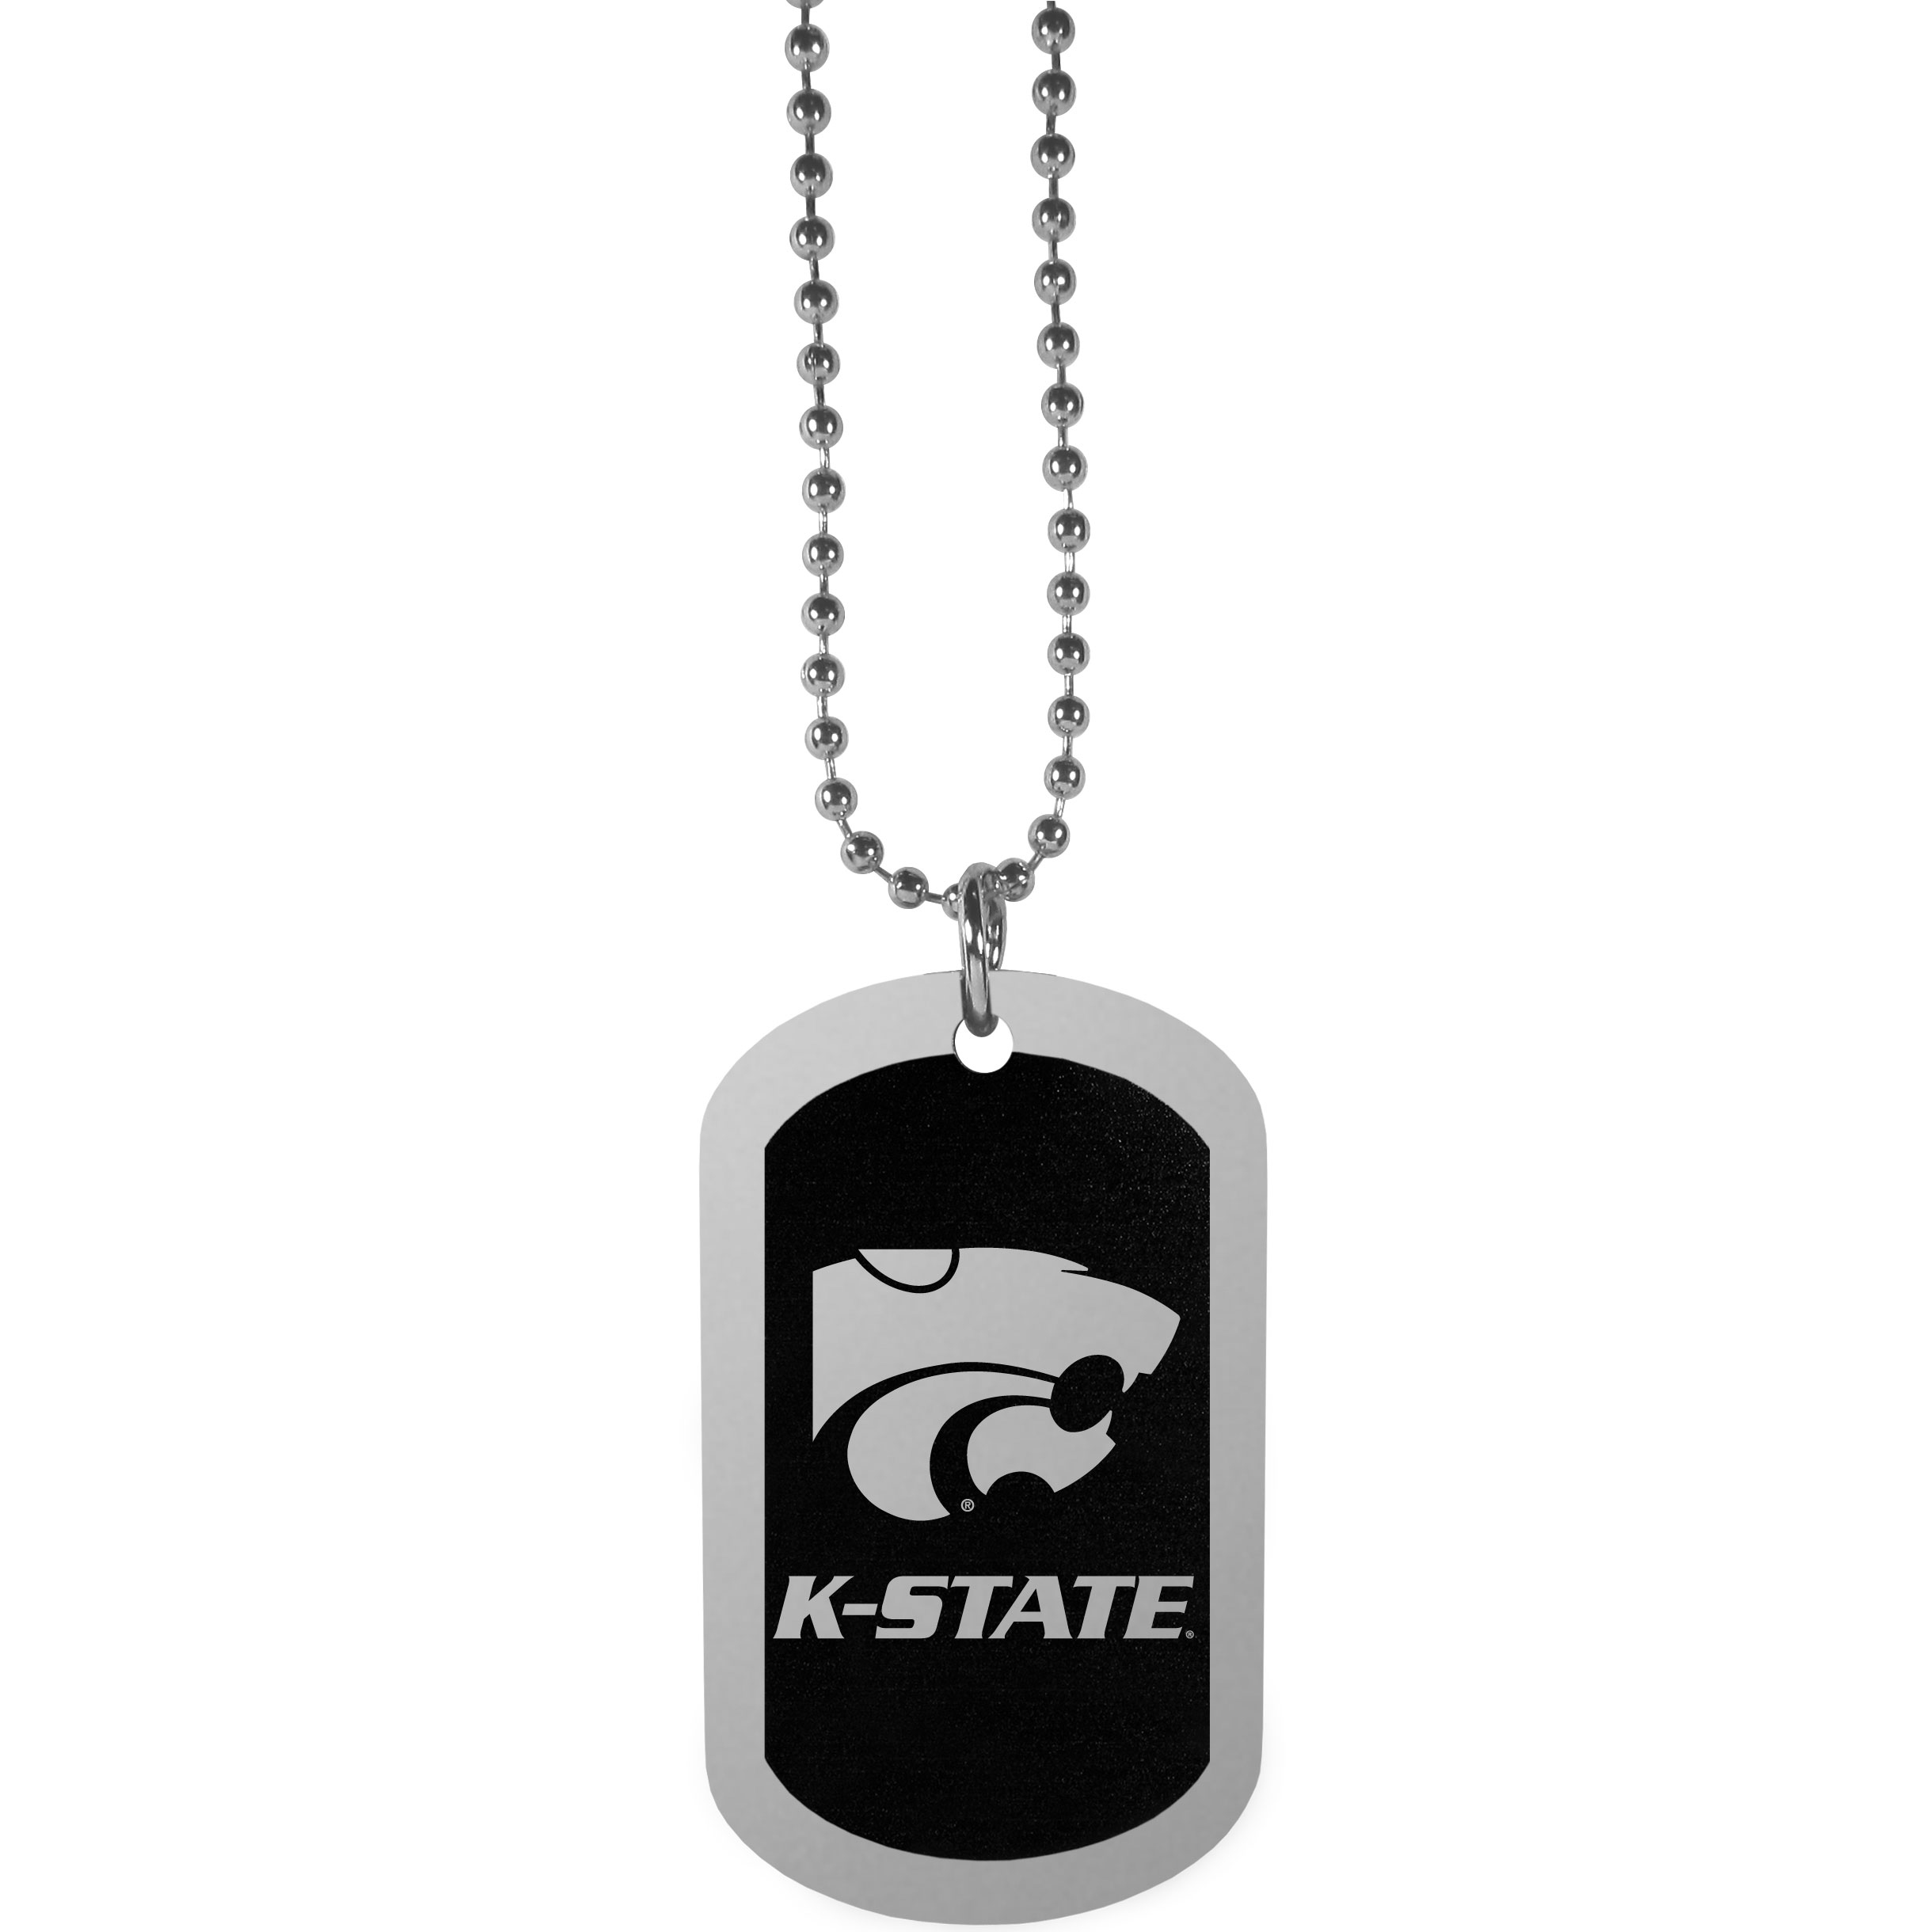 Kansas St. Wildcats Chrome Tag Necklace - Dog tag necklaces are a fashion statement that is here to stay. The sporty version of the classic tag features a black printed over a high polish tag to create a bold and sporty look. The tag comes on a 26 inch ball chain with a ball and joint clasp. Any Kansas St. Wildcats would be proud to wear this attractive fashion accessory.